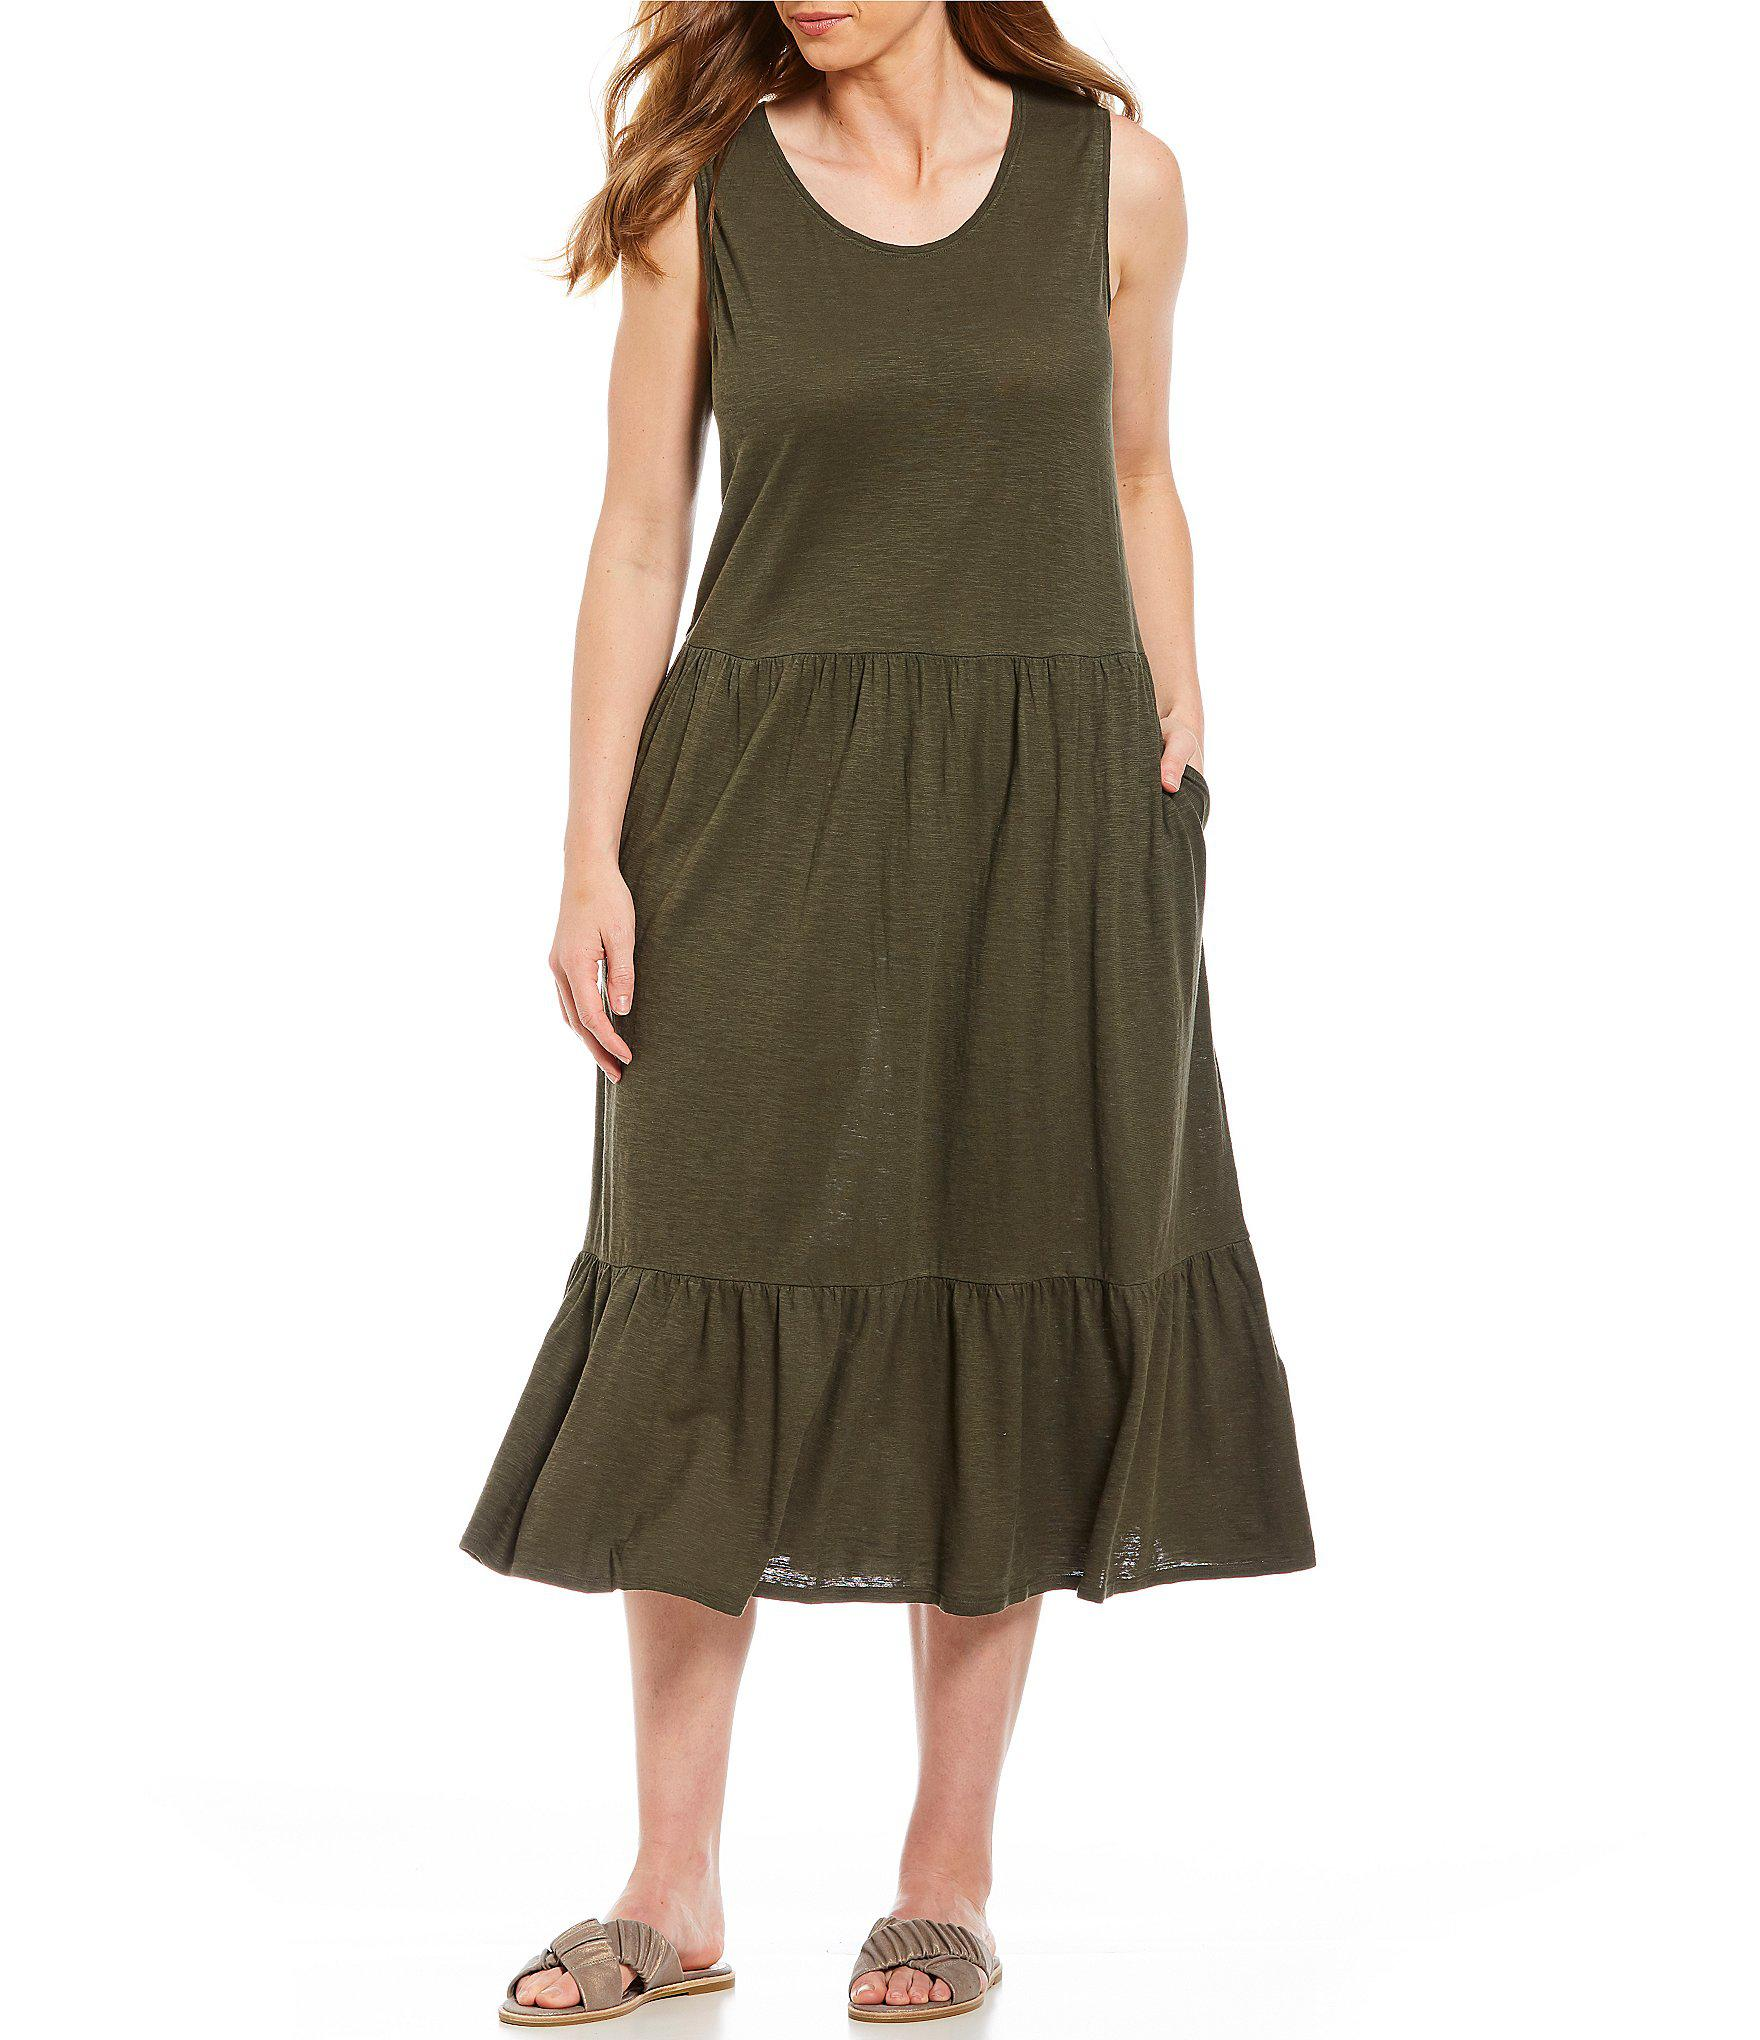 84ff094b657 Lyst - Eileen Fisher Plus Size Scoop Neck Sleeveless Dress in Green